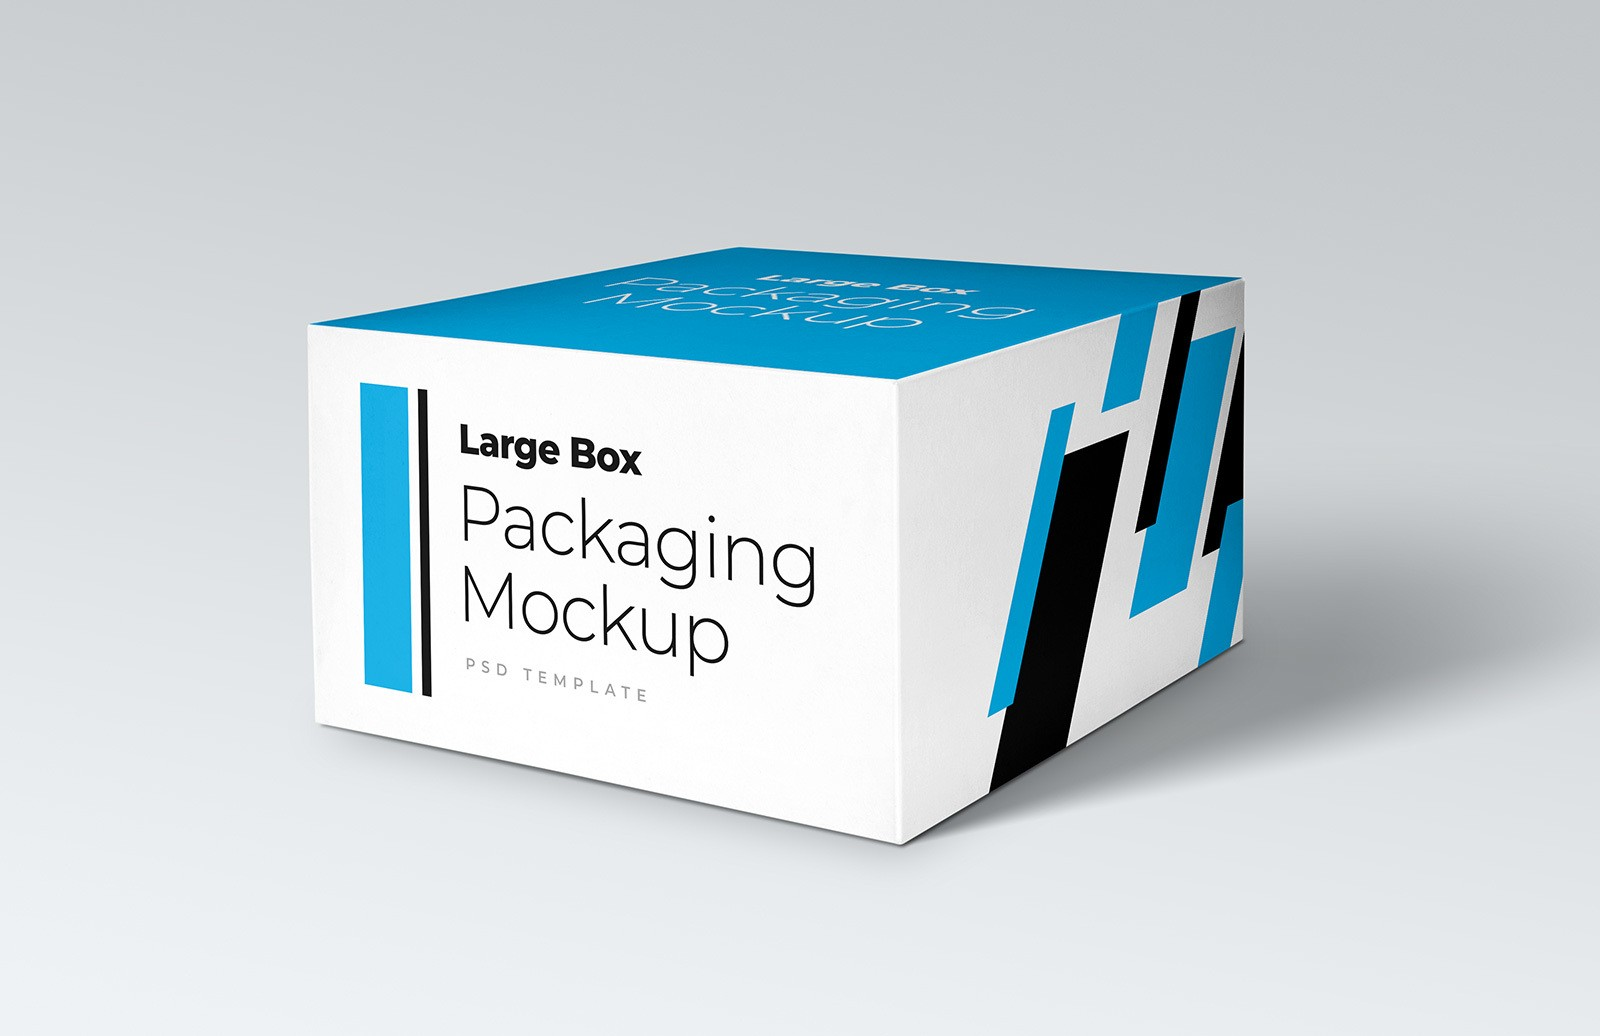 Large Box Packaging Mockup Preview 1